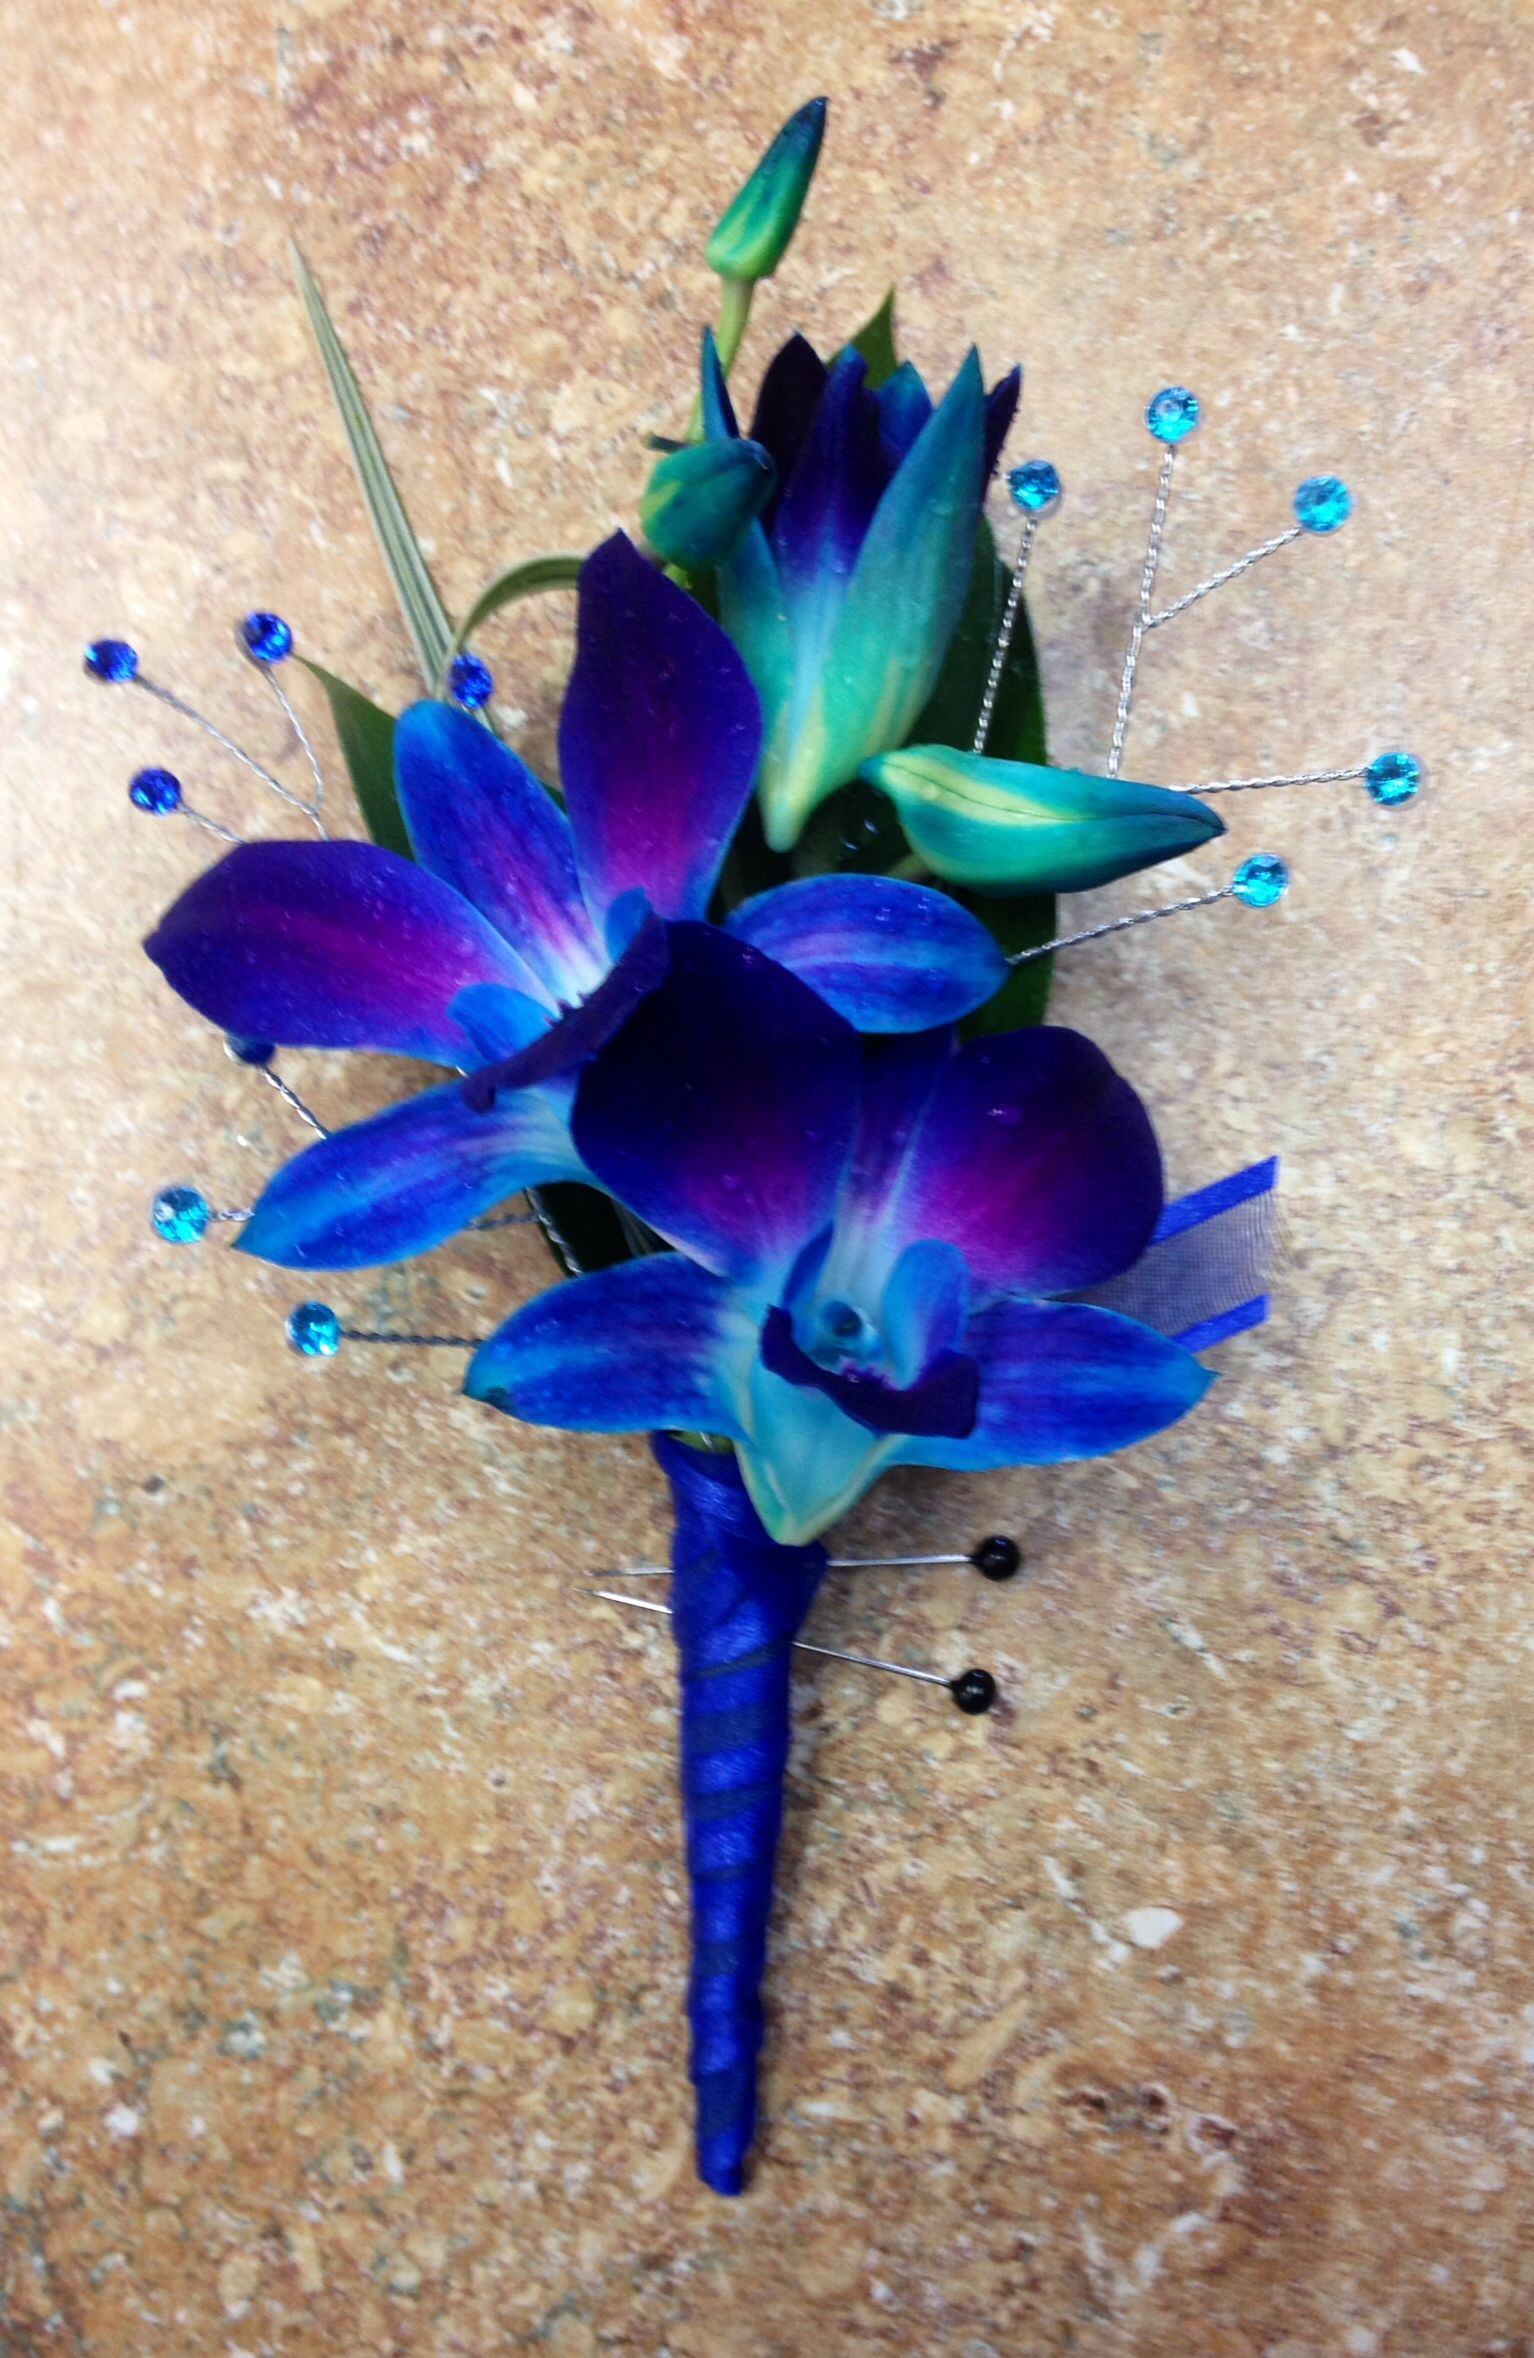 Blue Bom orchid boutonnière, proms, weddings, teal | floral designs ...